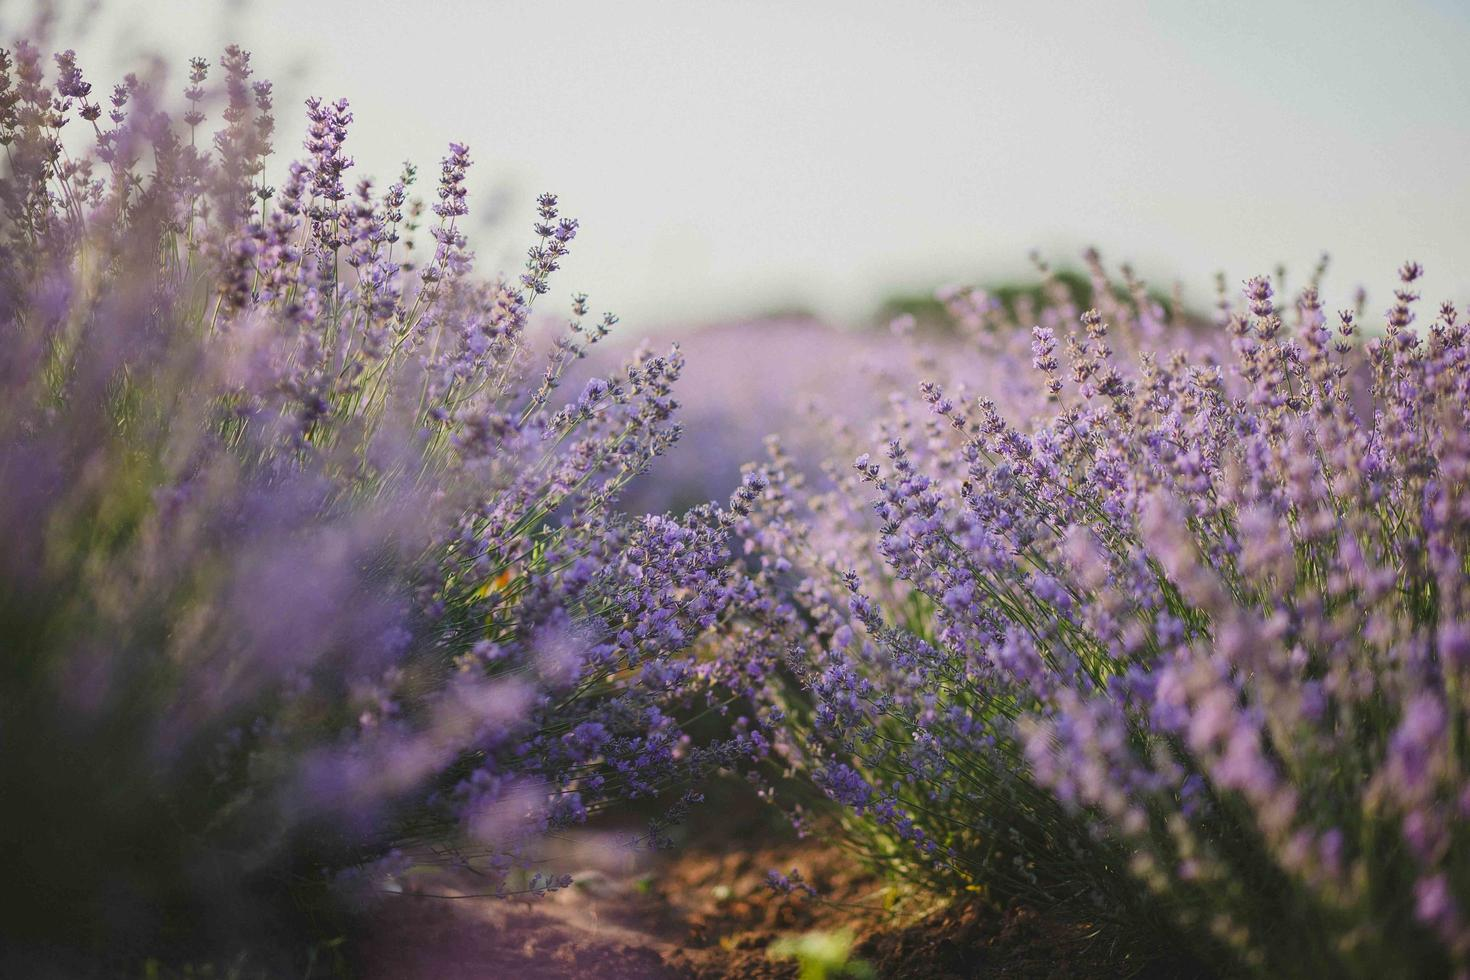 Field of lavender photo